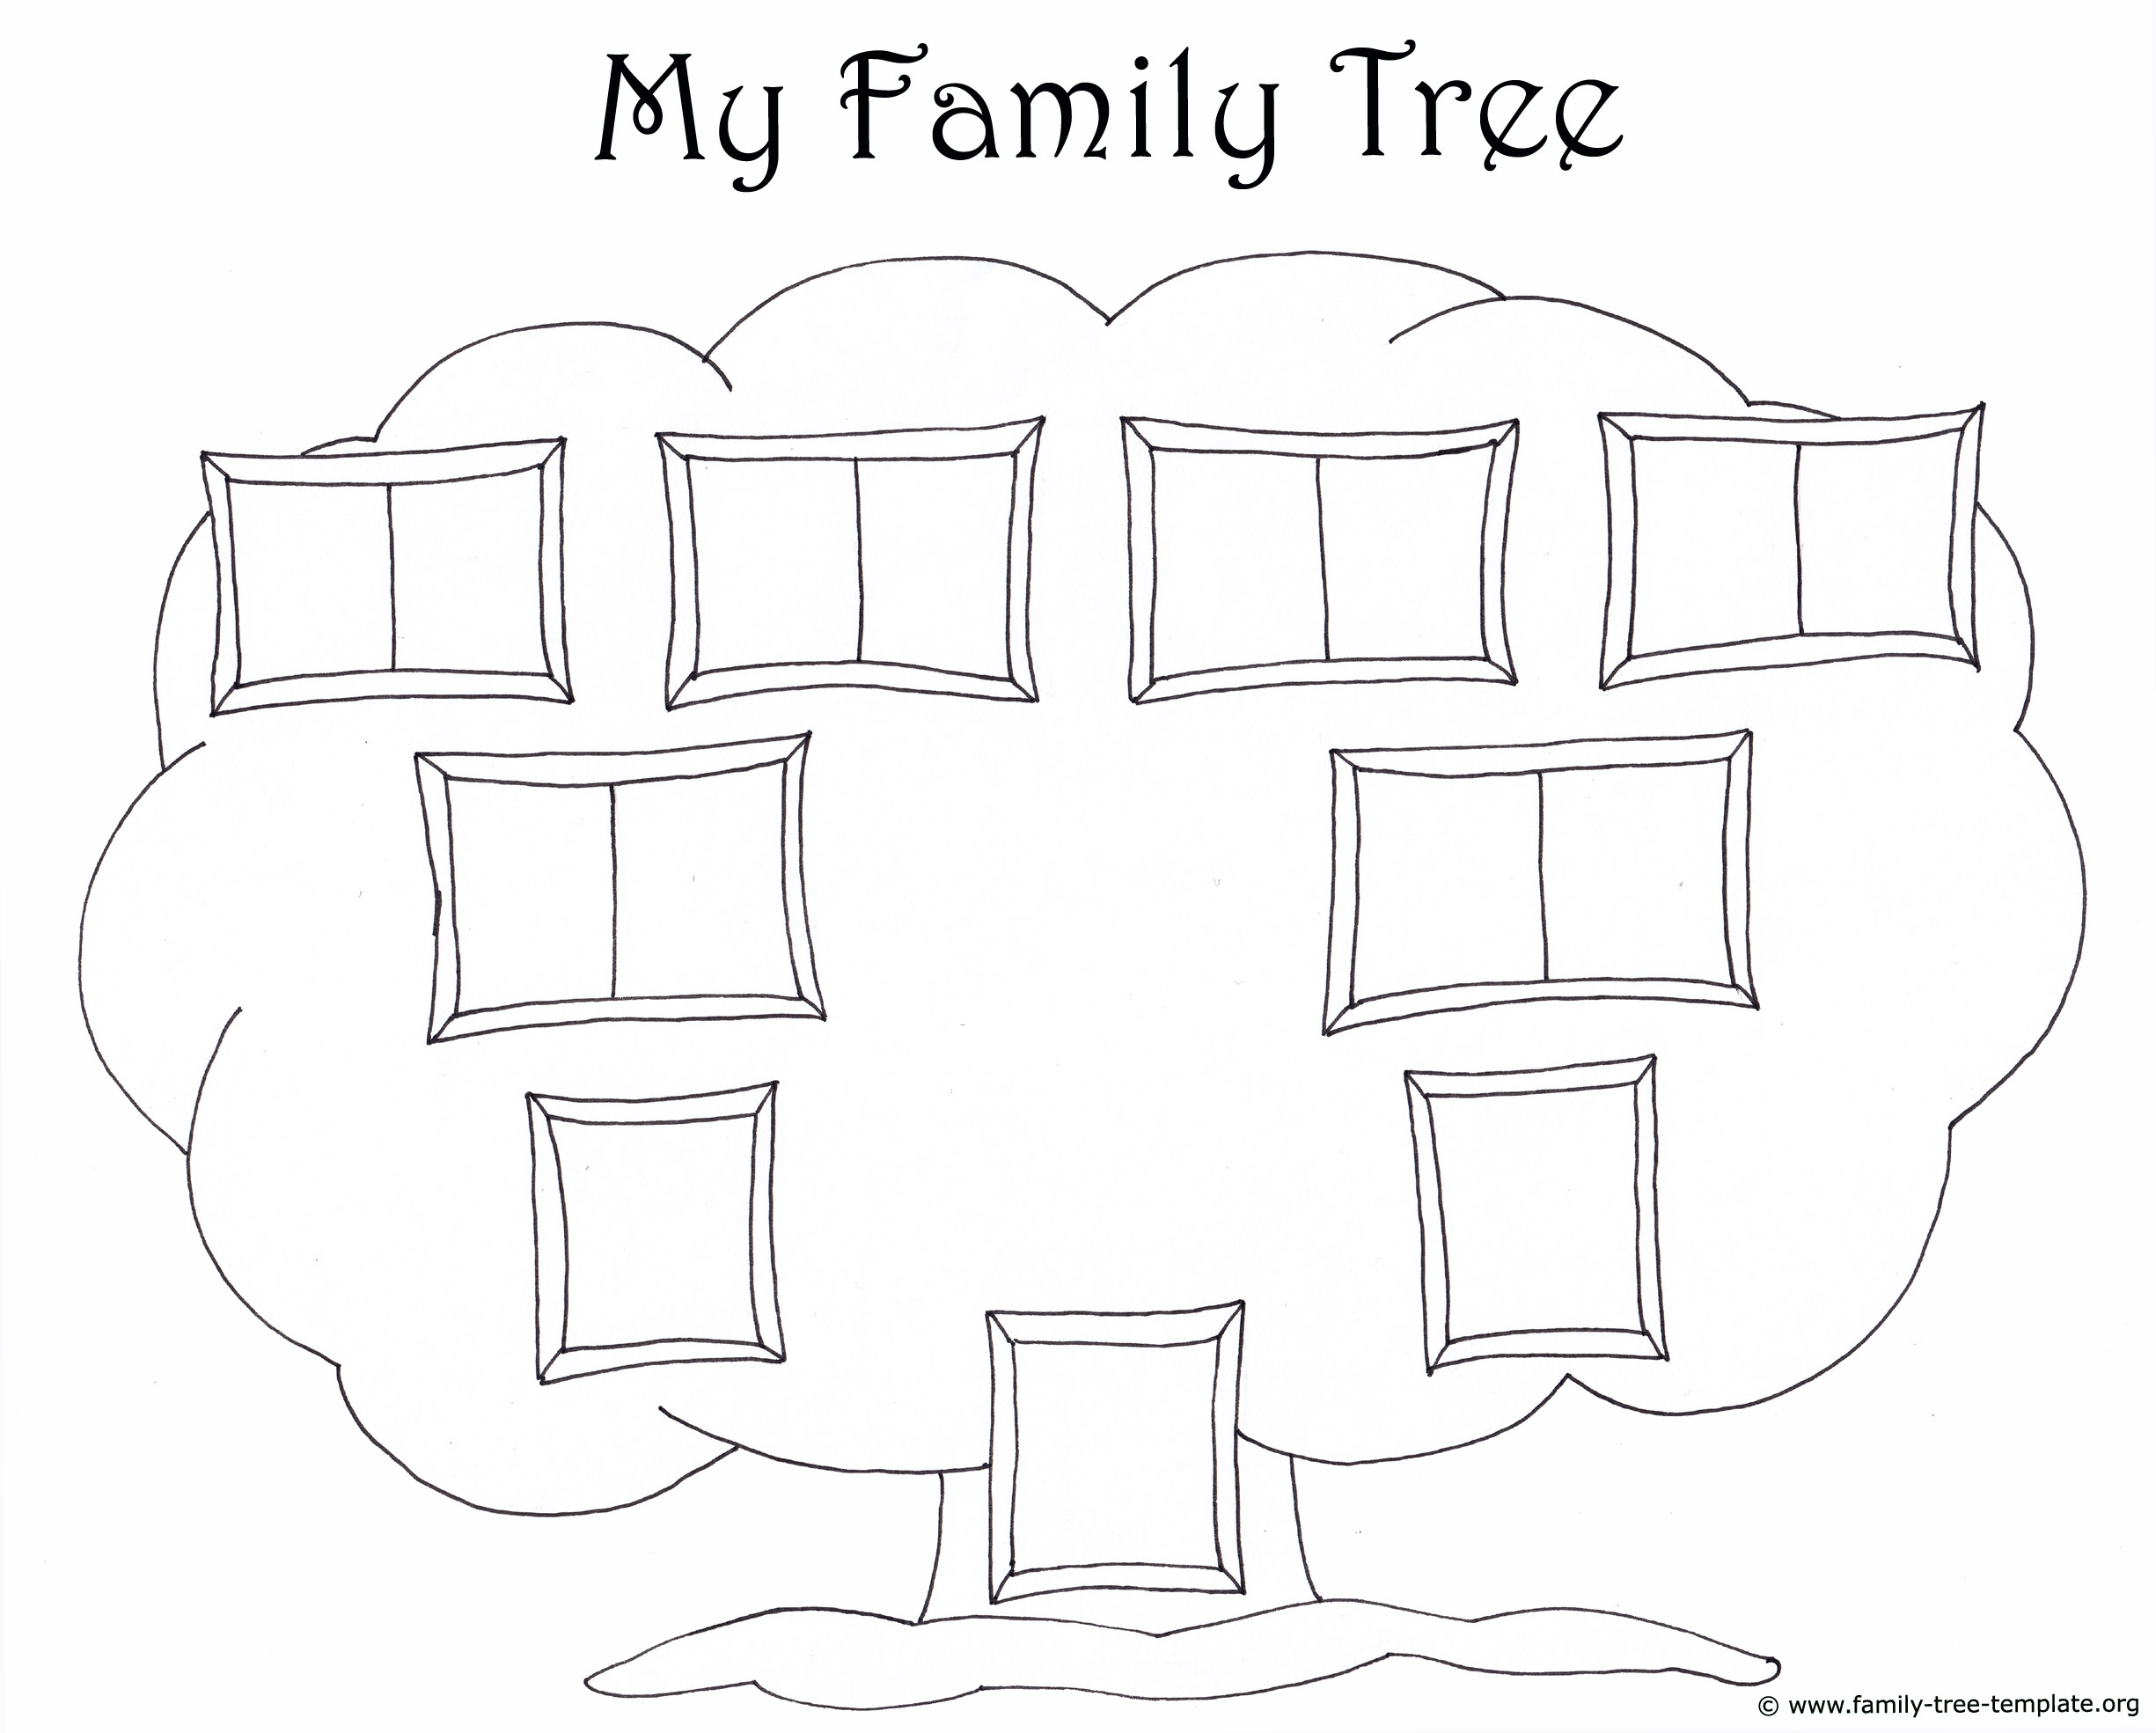 Family Tree Template For Kids To Print And Color